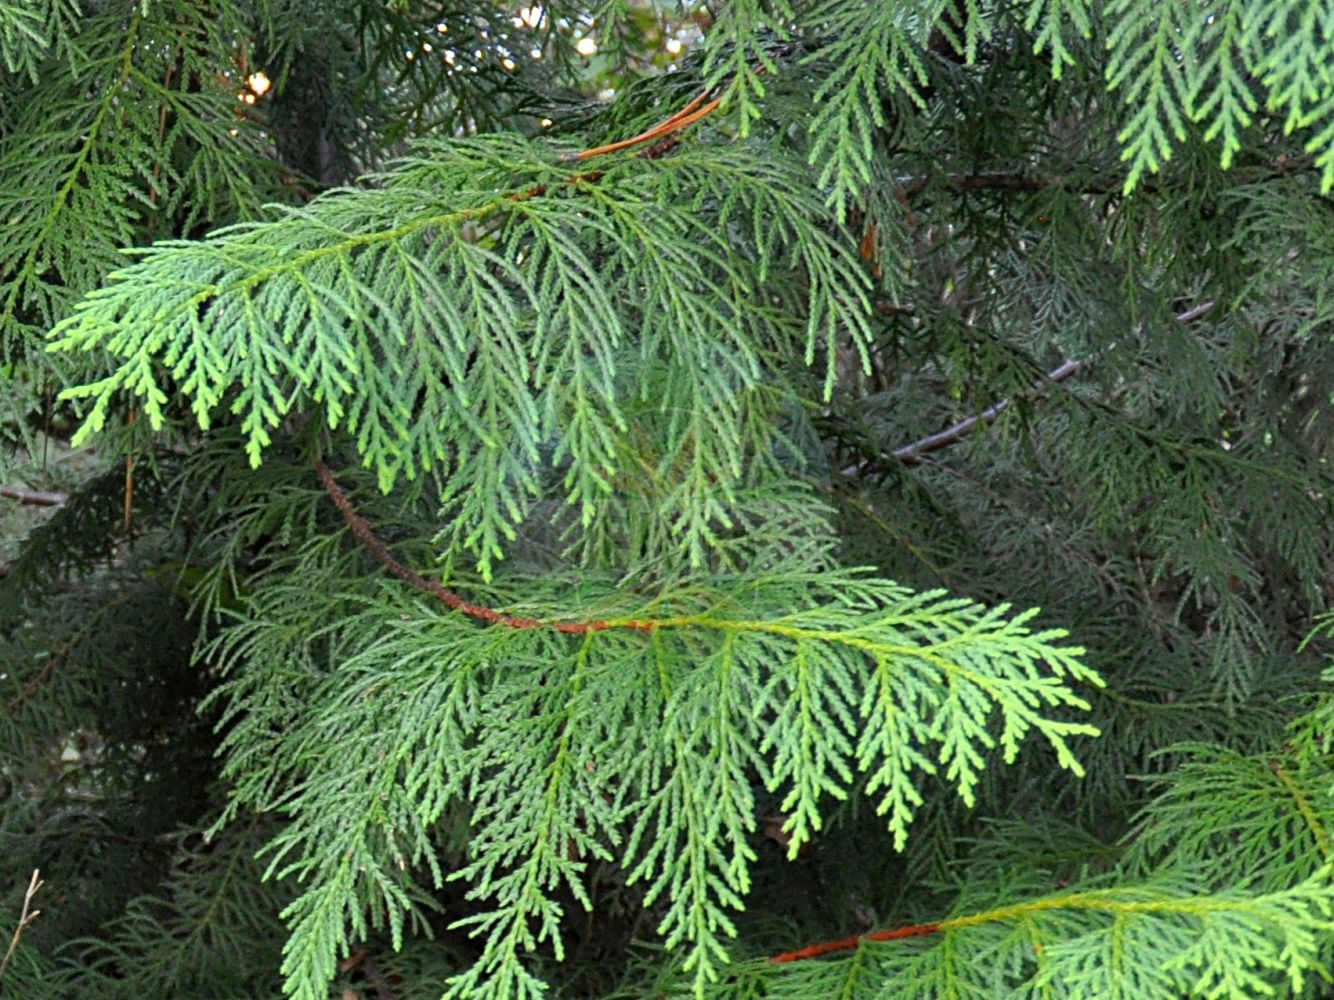 Foto von Xanthocyparis nootkatensis (Nootka-Scheinzypresse - Nootka Cypress). Das Foto wurde in Bayreuth, Bayern, Deutschland aufgenommen. ---- Photo of Xanthocyparis nootkatensis (Nootka-Scheinzypresse - Nootka Cypress).The picture was taken in Bayreuth, Bavaria, Germany.(Xanthocyparis nootkatensis,Nootka-Scheinzypresse,Nootka Cypress,Chamaecyparis nootkatensis,Cupressus nootkatensis,,Alaska Cypress,Alaska Yellow Cedar,Nootka False Cypress,Yellow Cypress,Xanthocyparis,Cupressaceae,Zypressengewaechse,Cypress family)